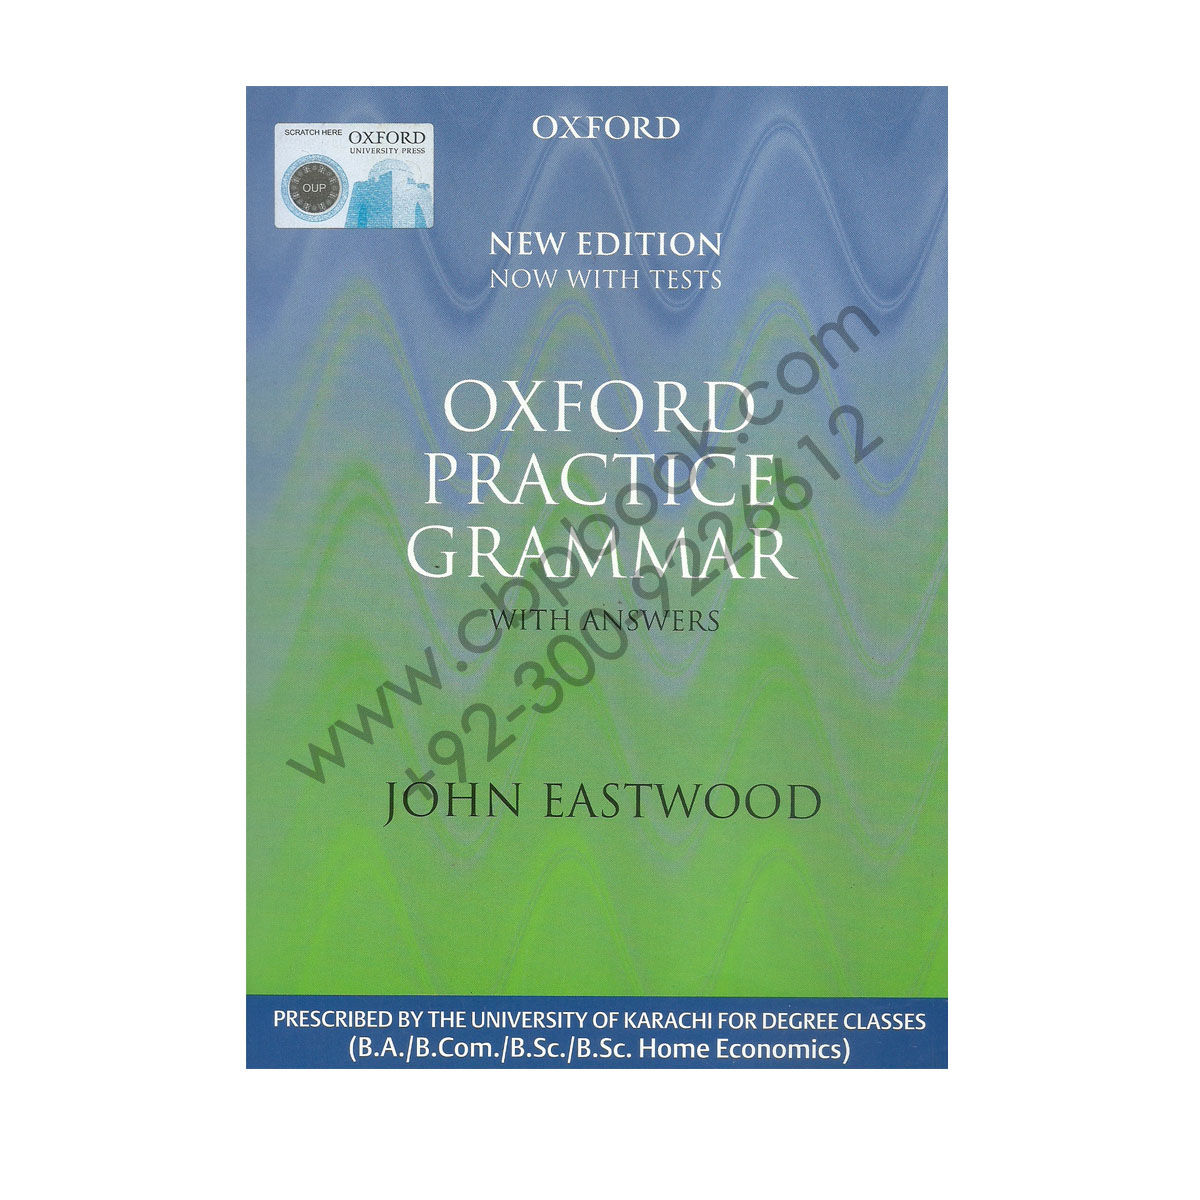 oxford practice grammar with answers john eastwood second edition now with tests oxford university press